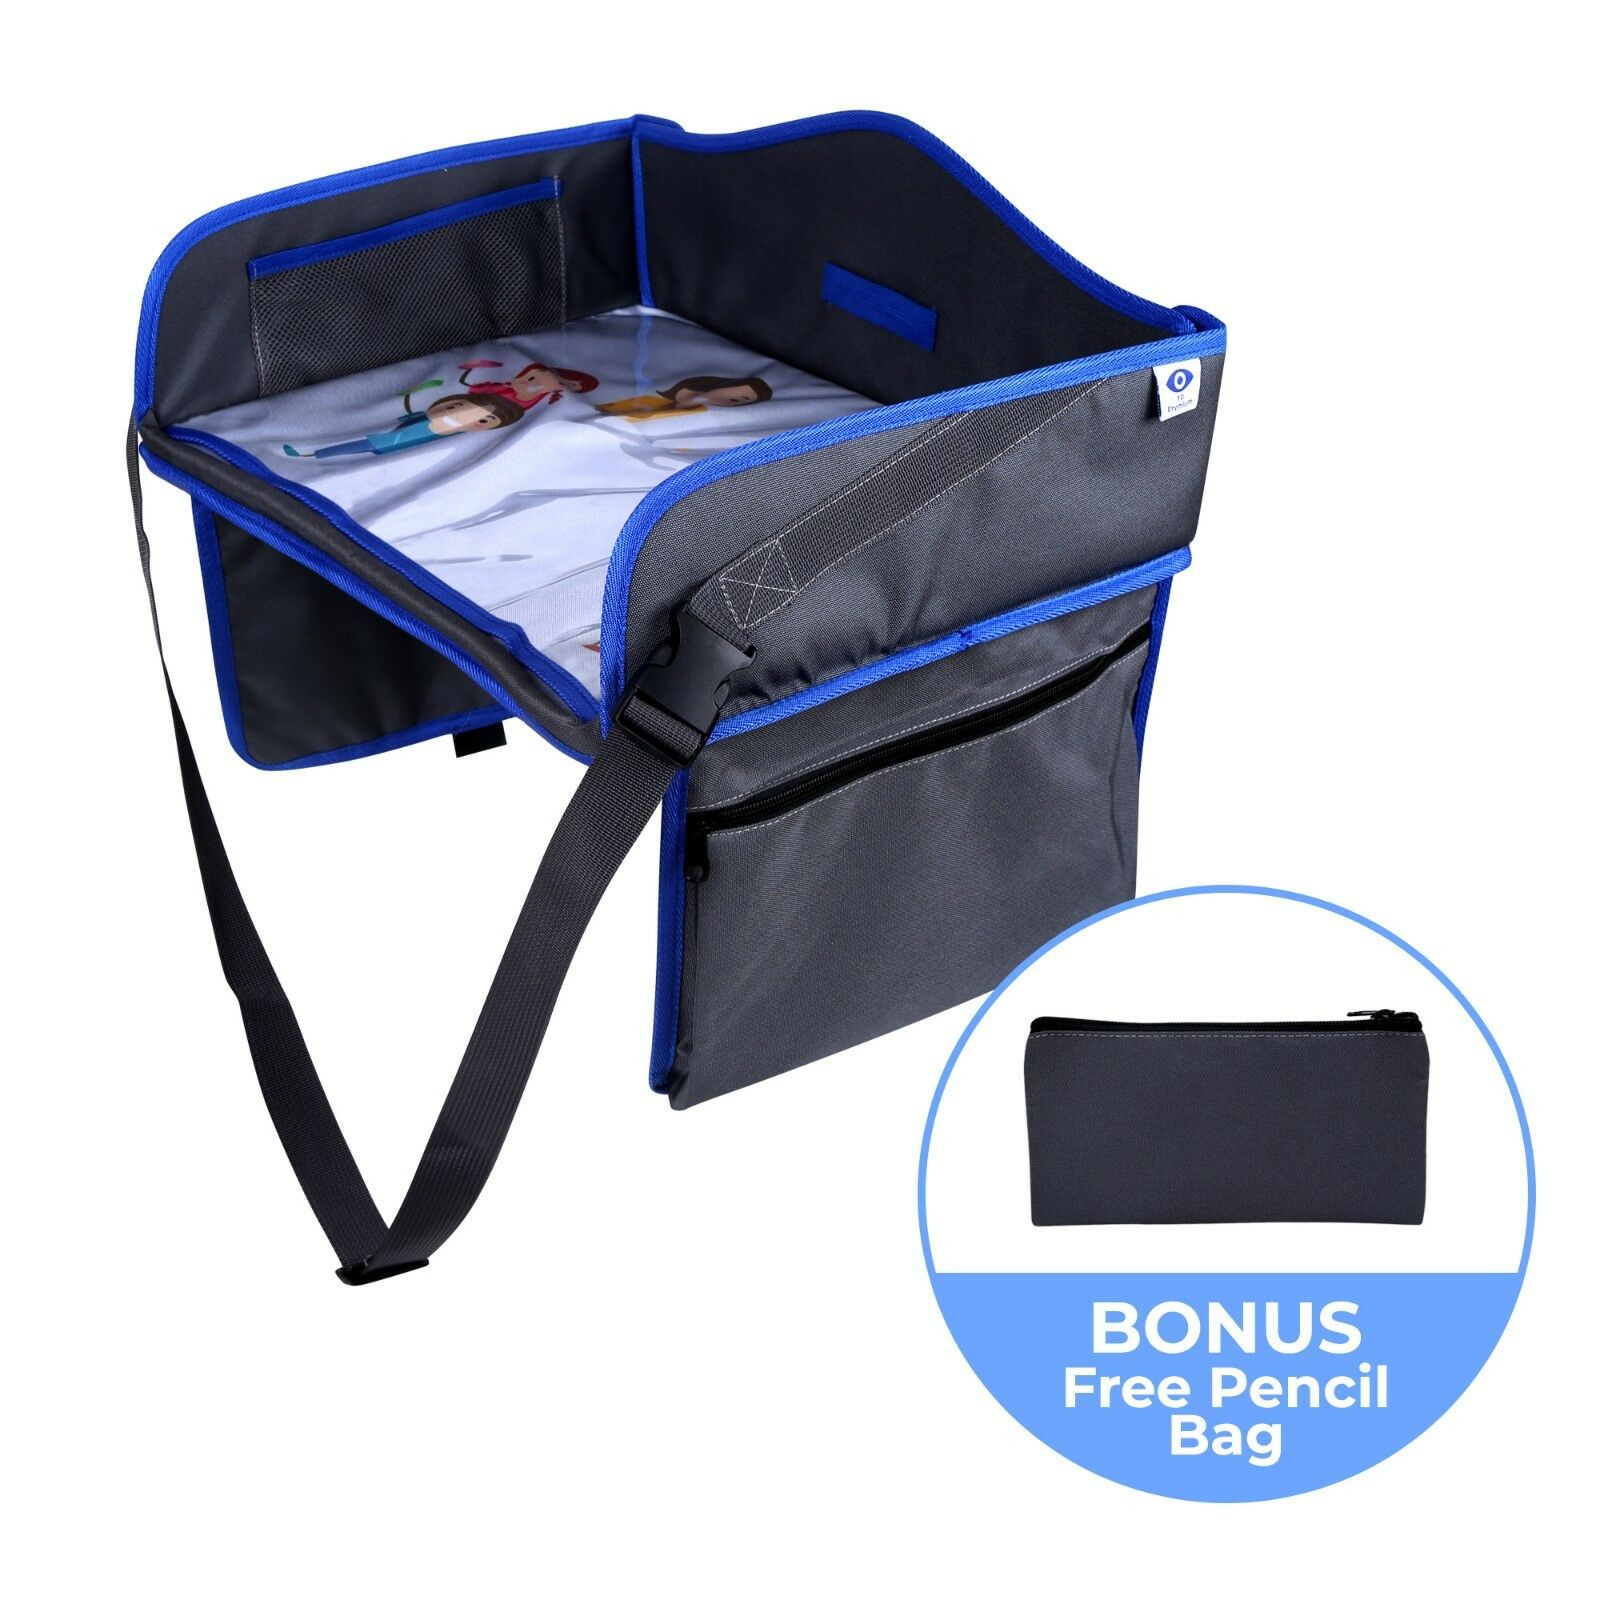 Kids Car Seat Travel Tray - Portable Toddler Activity Table